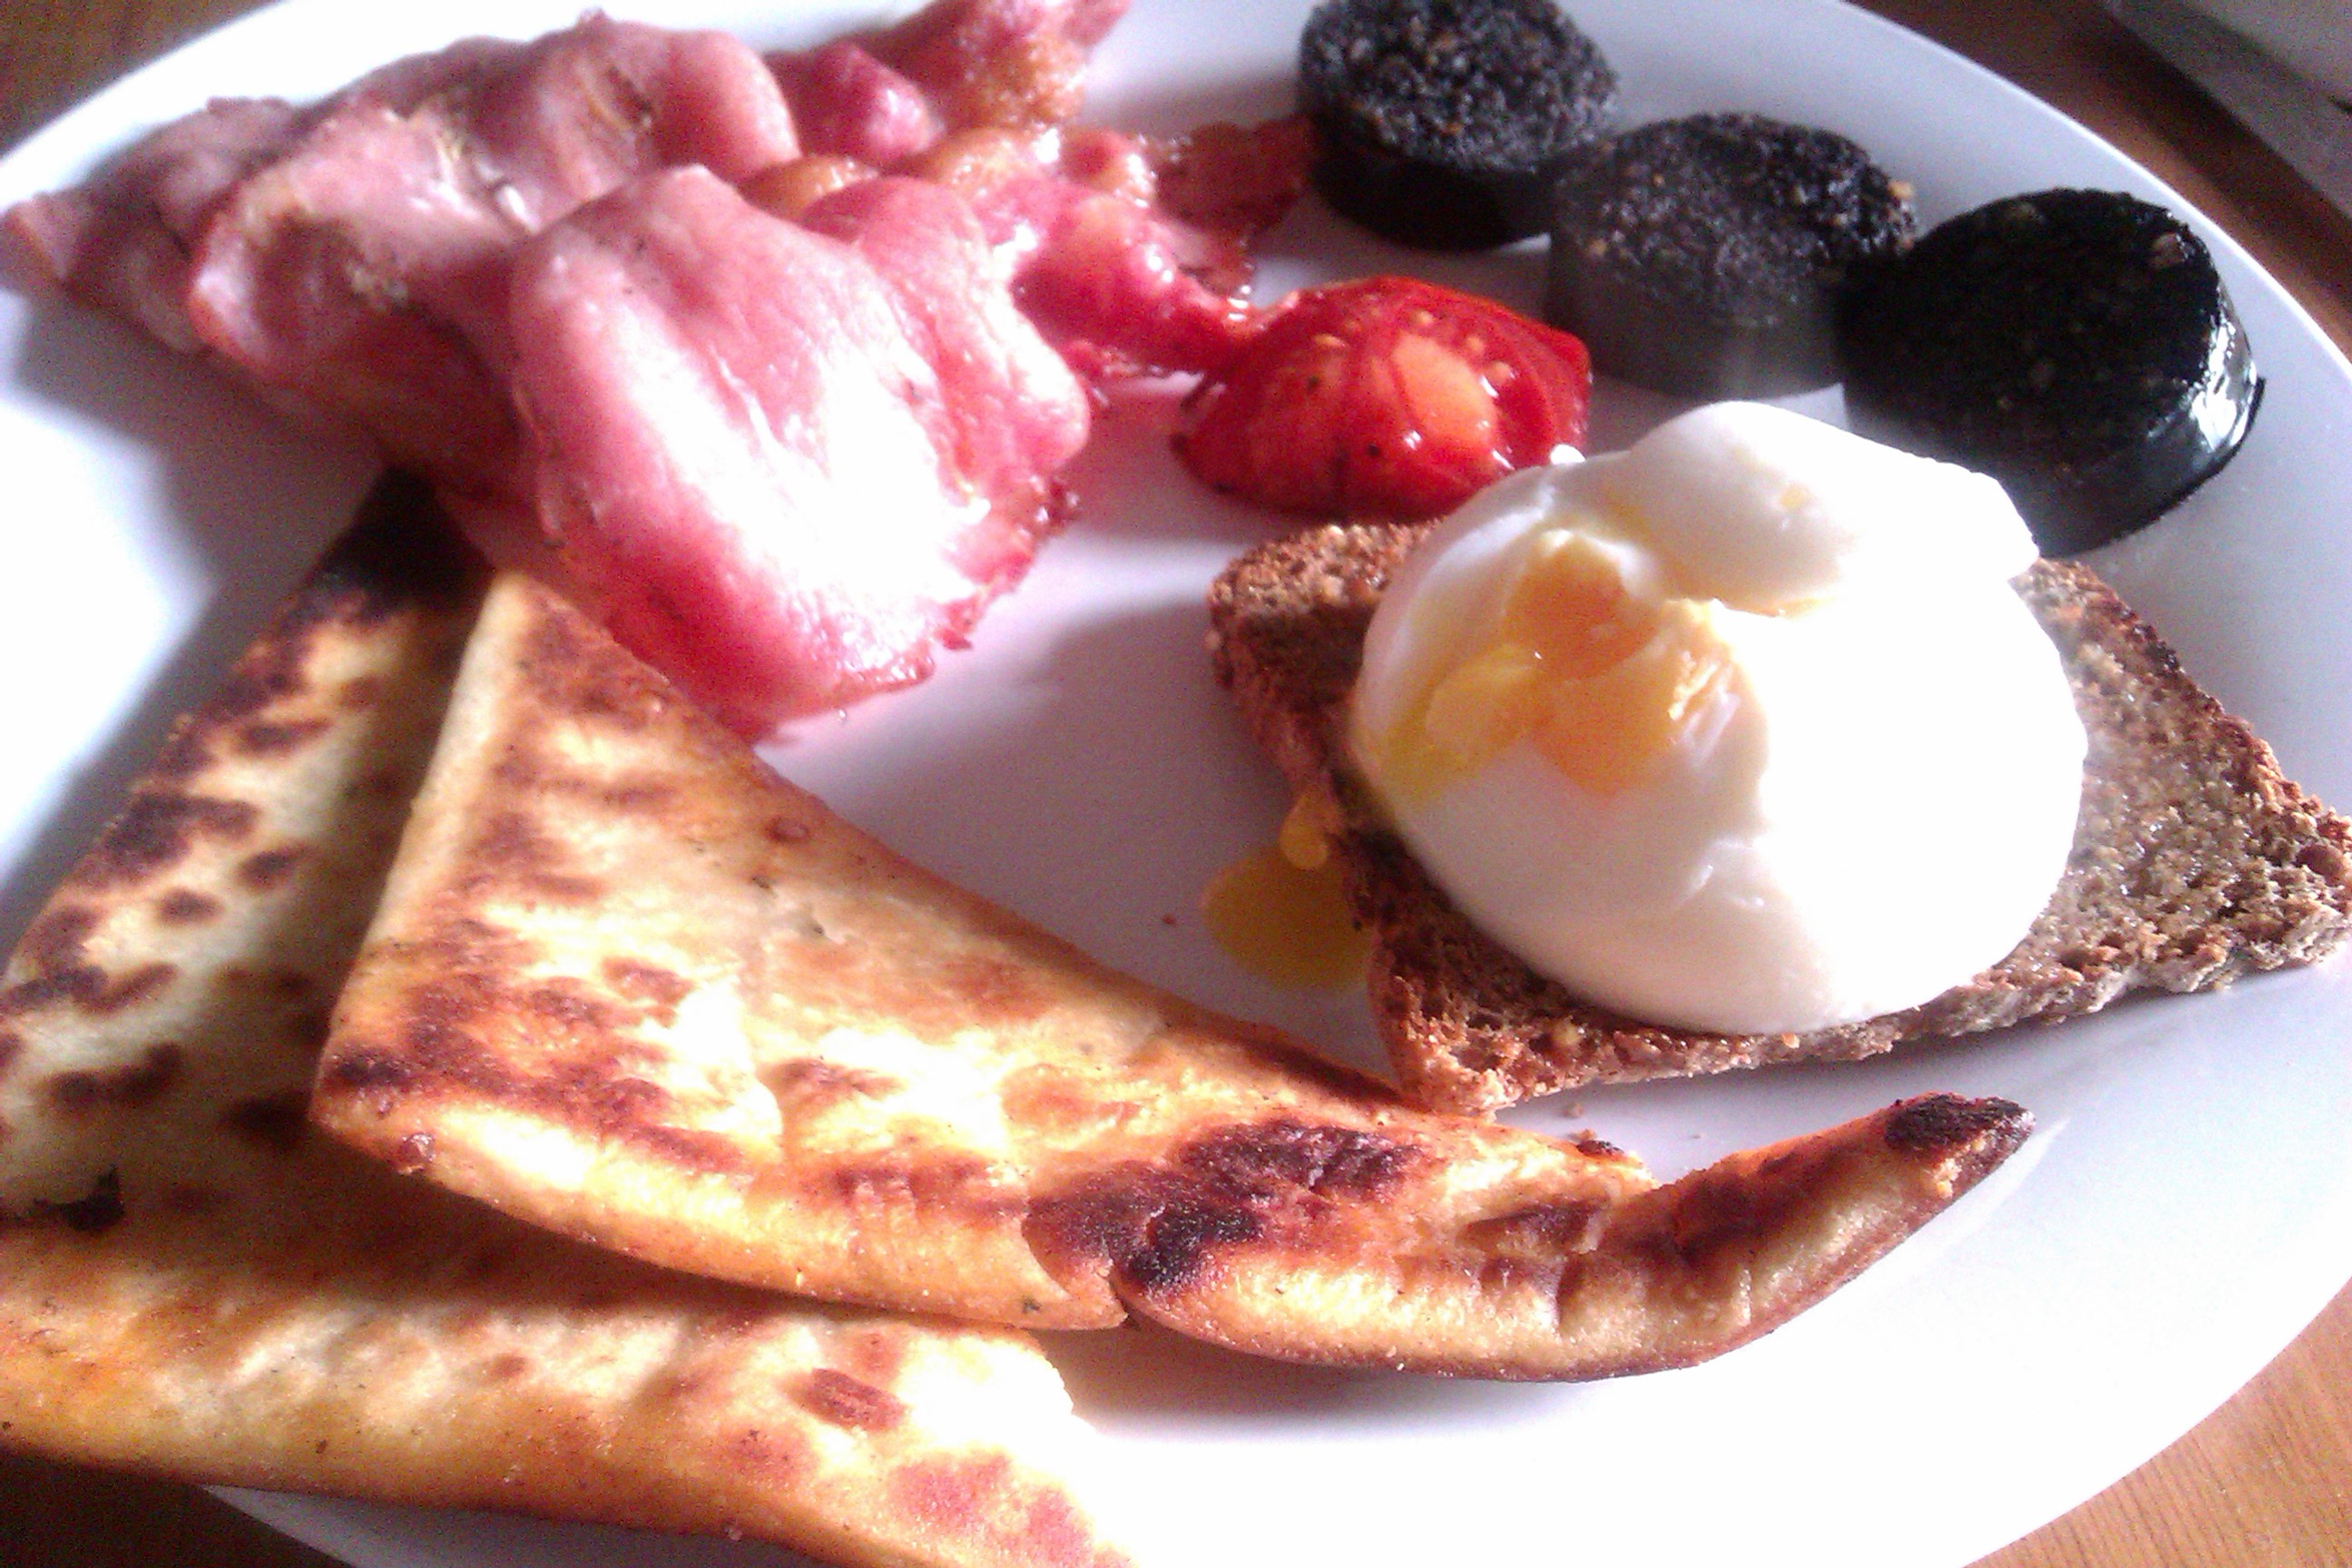 The finished article, breakfast of champions